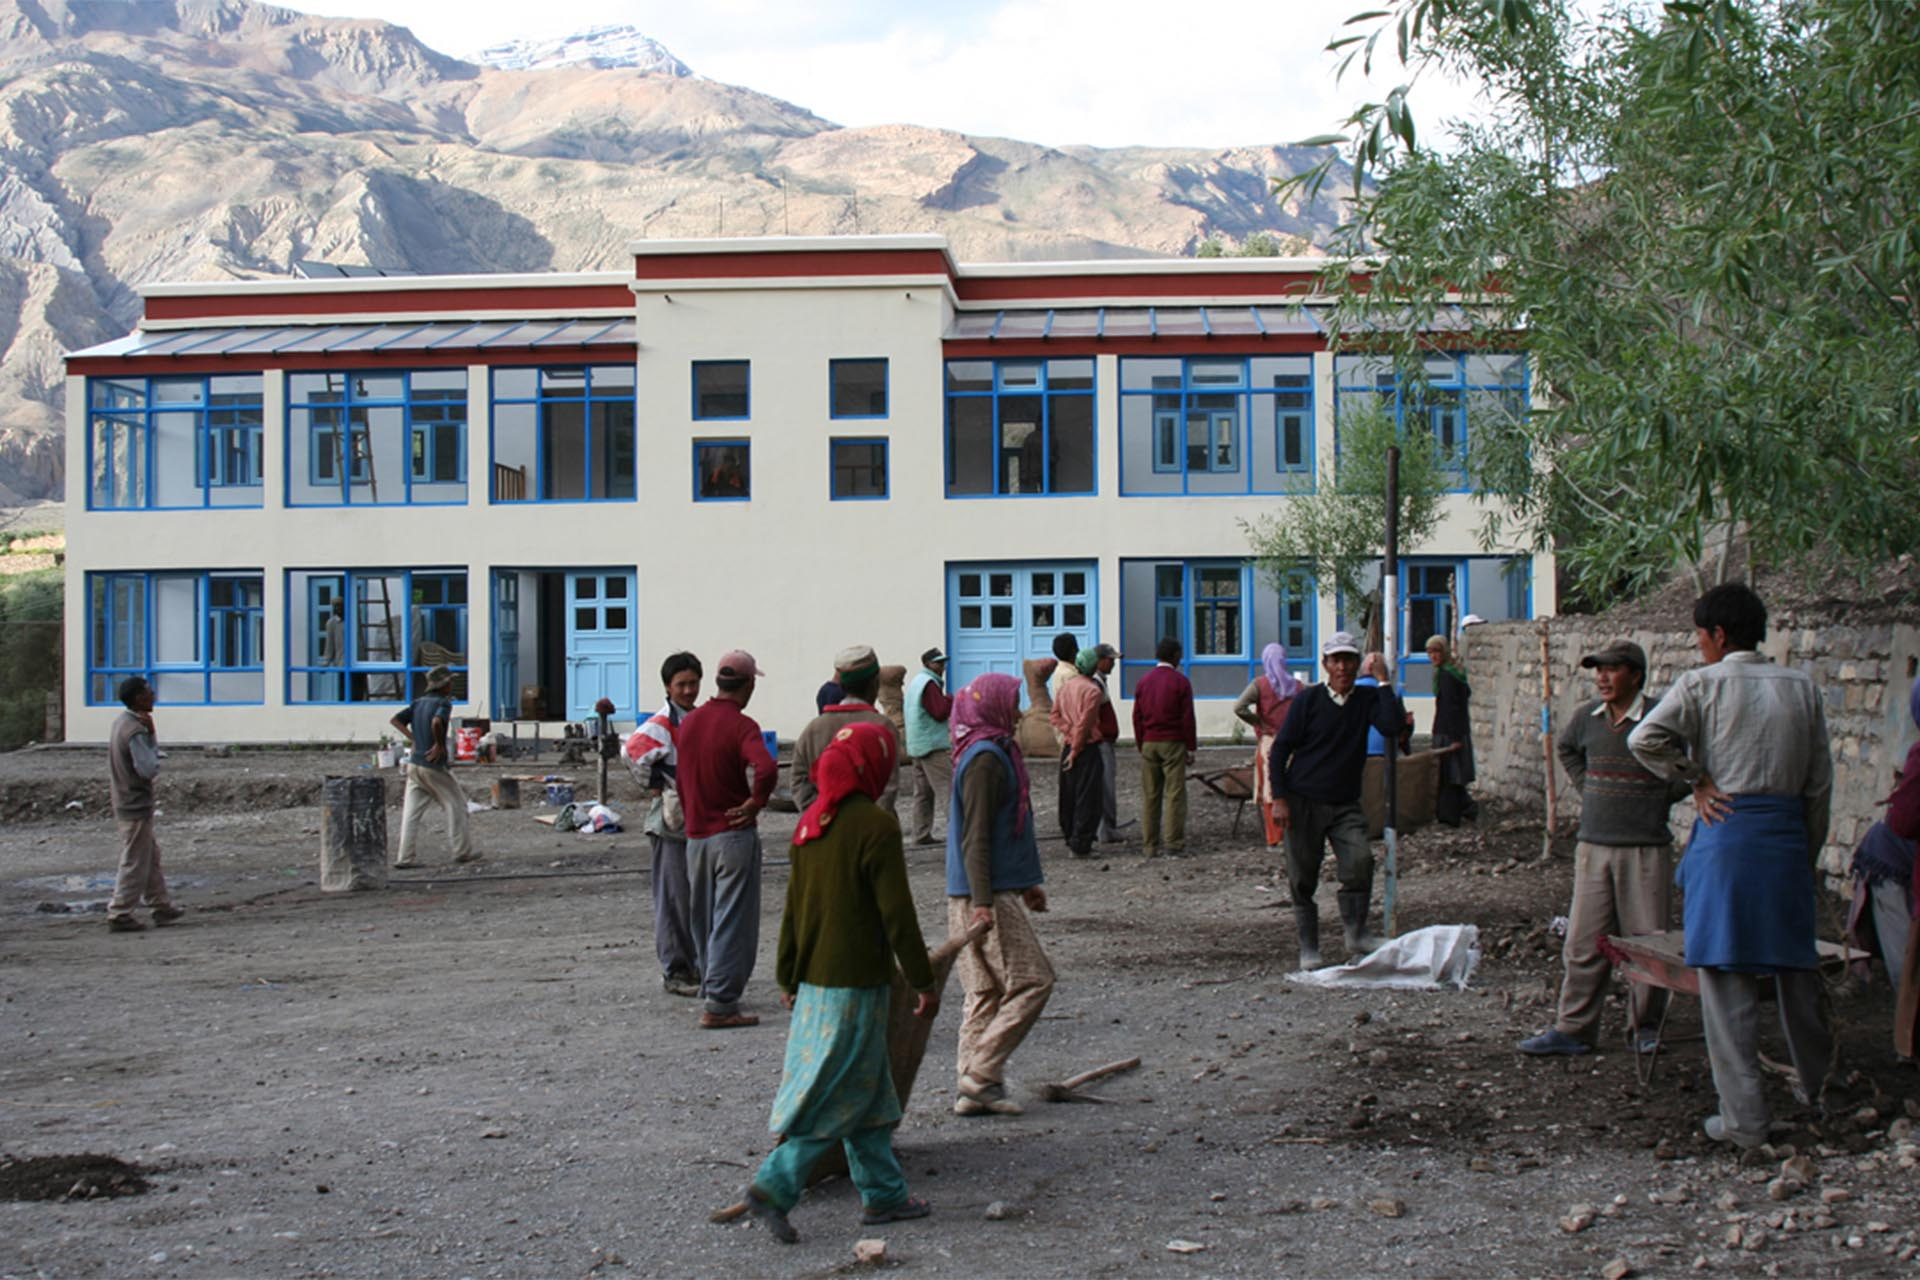 Mane village school preparing to open on July 15th